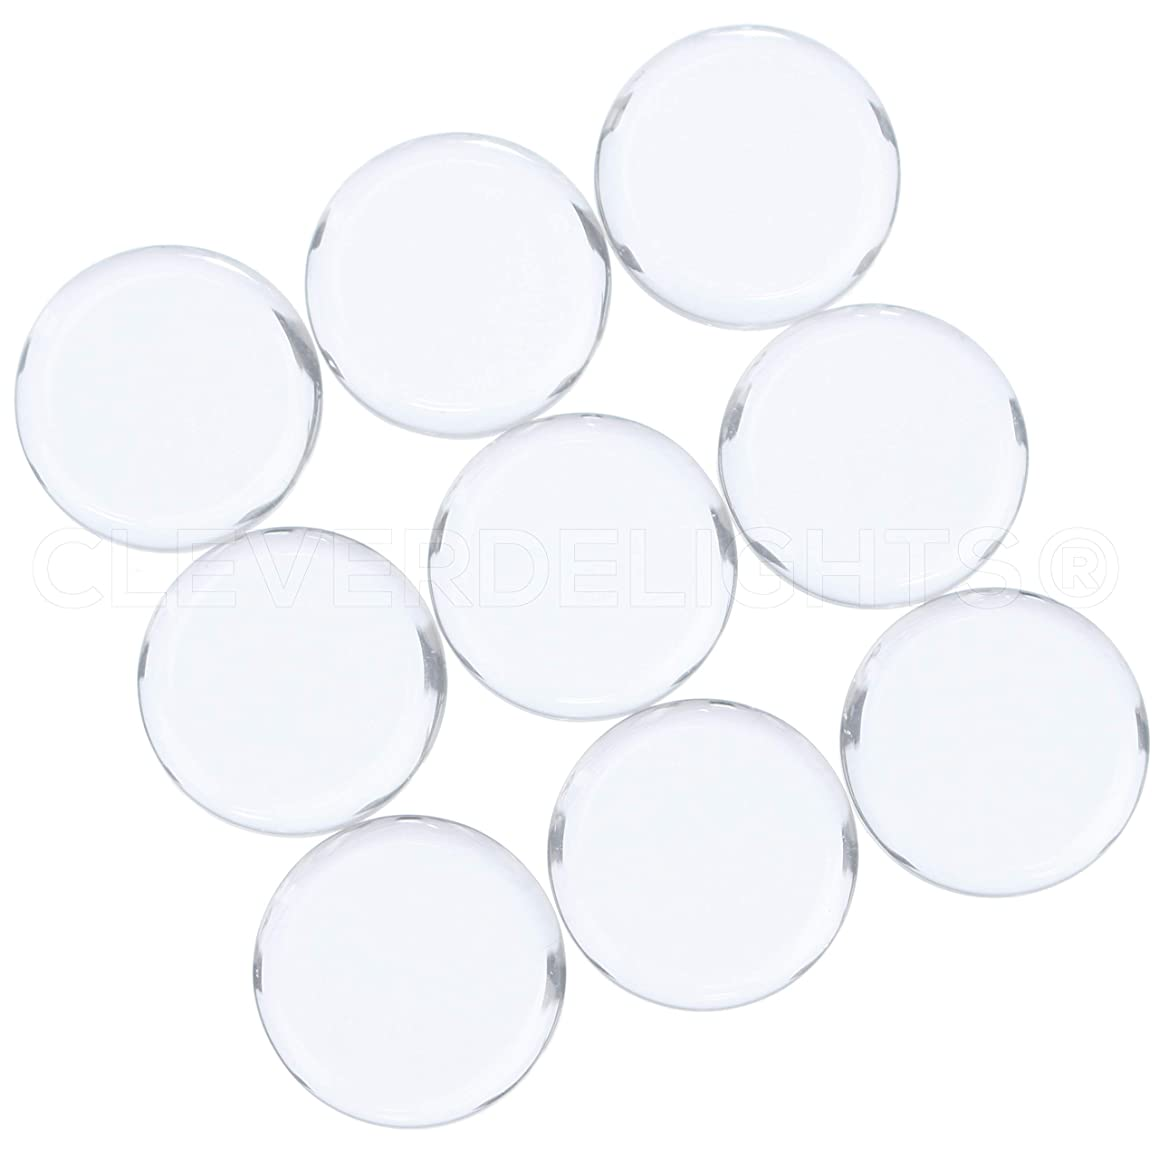 CleverDelights 50 18mm Round Glass Tiles - 11/16